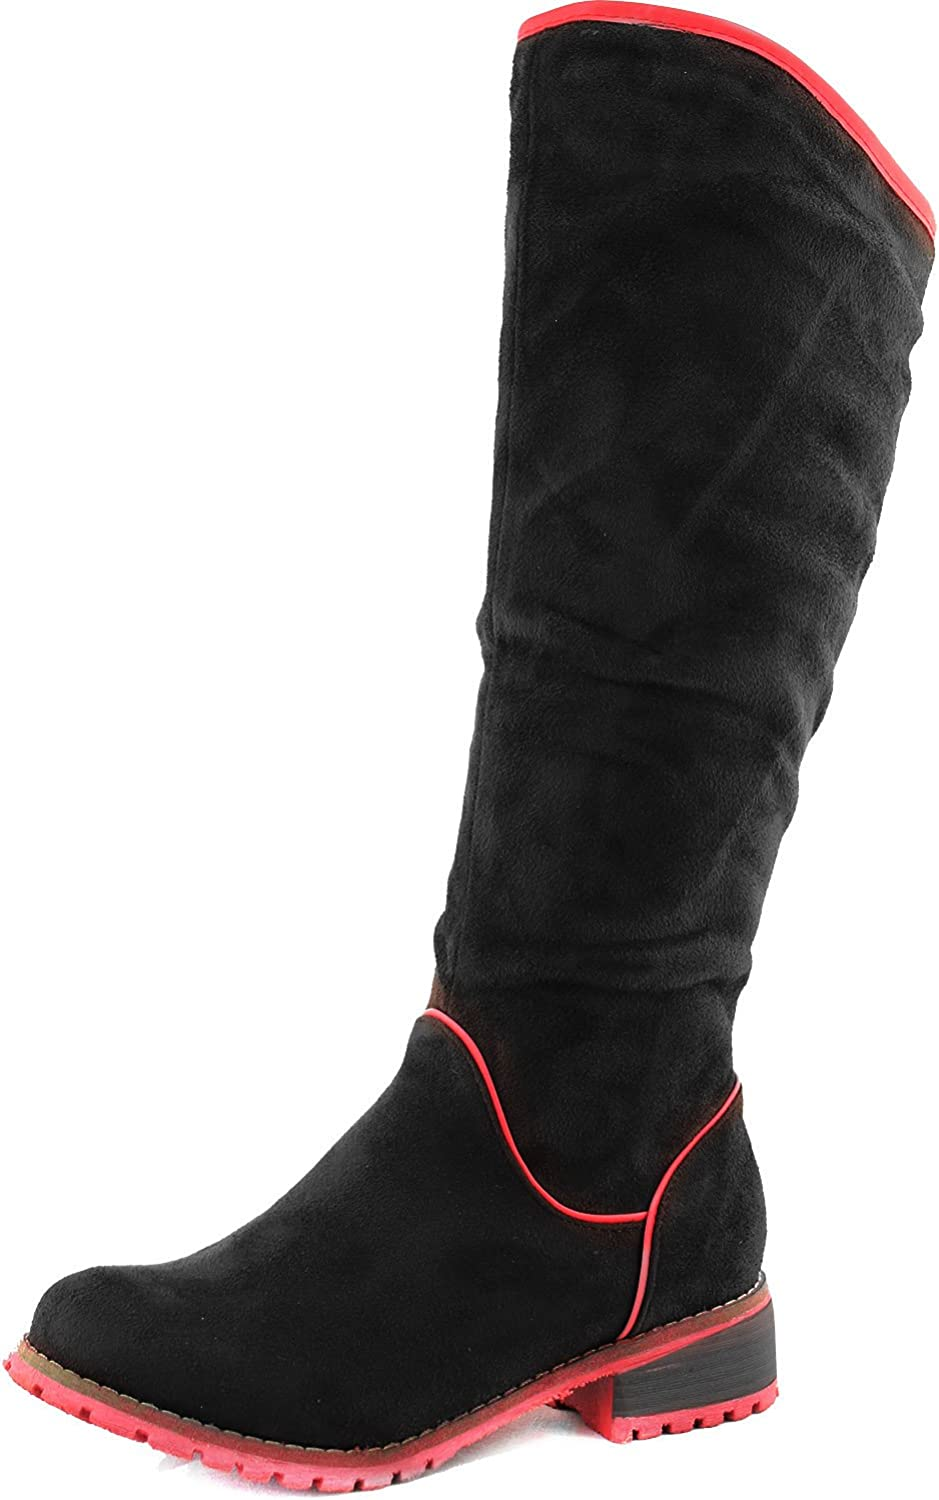 Top Moda Women's Knee High Cowboy Riding Boots Mid Calf Slouch color Lining Rubber Out-Sole Fashion shoes